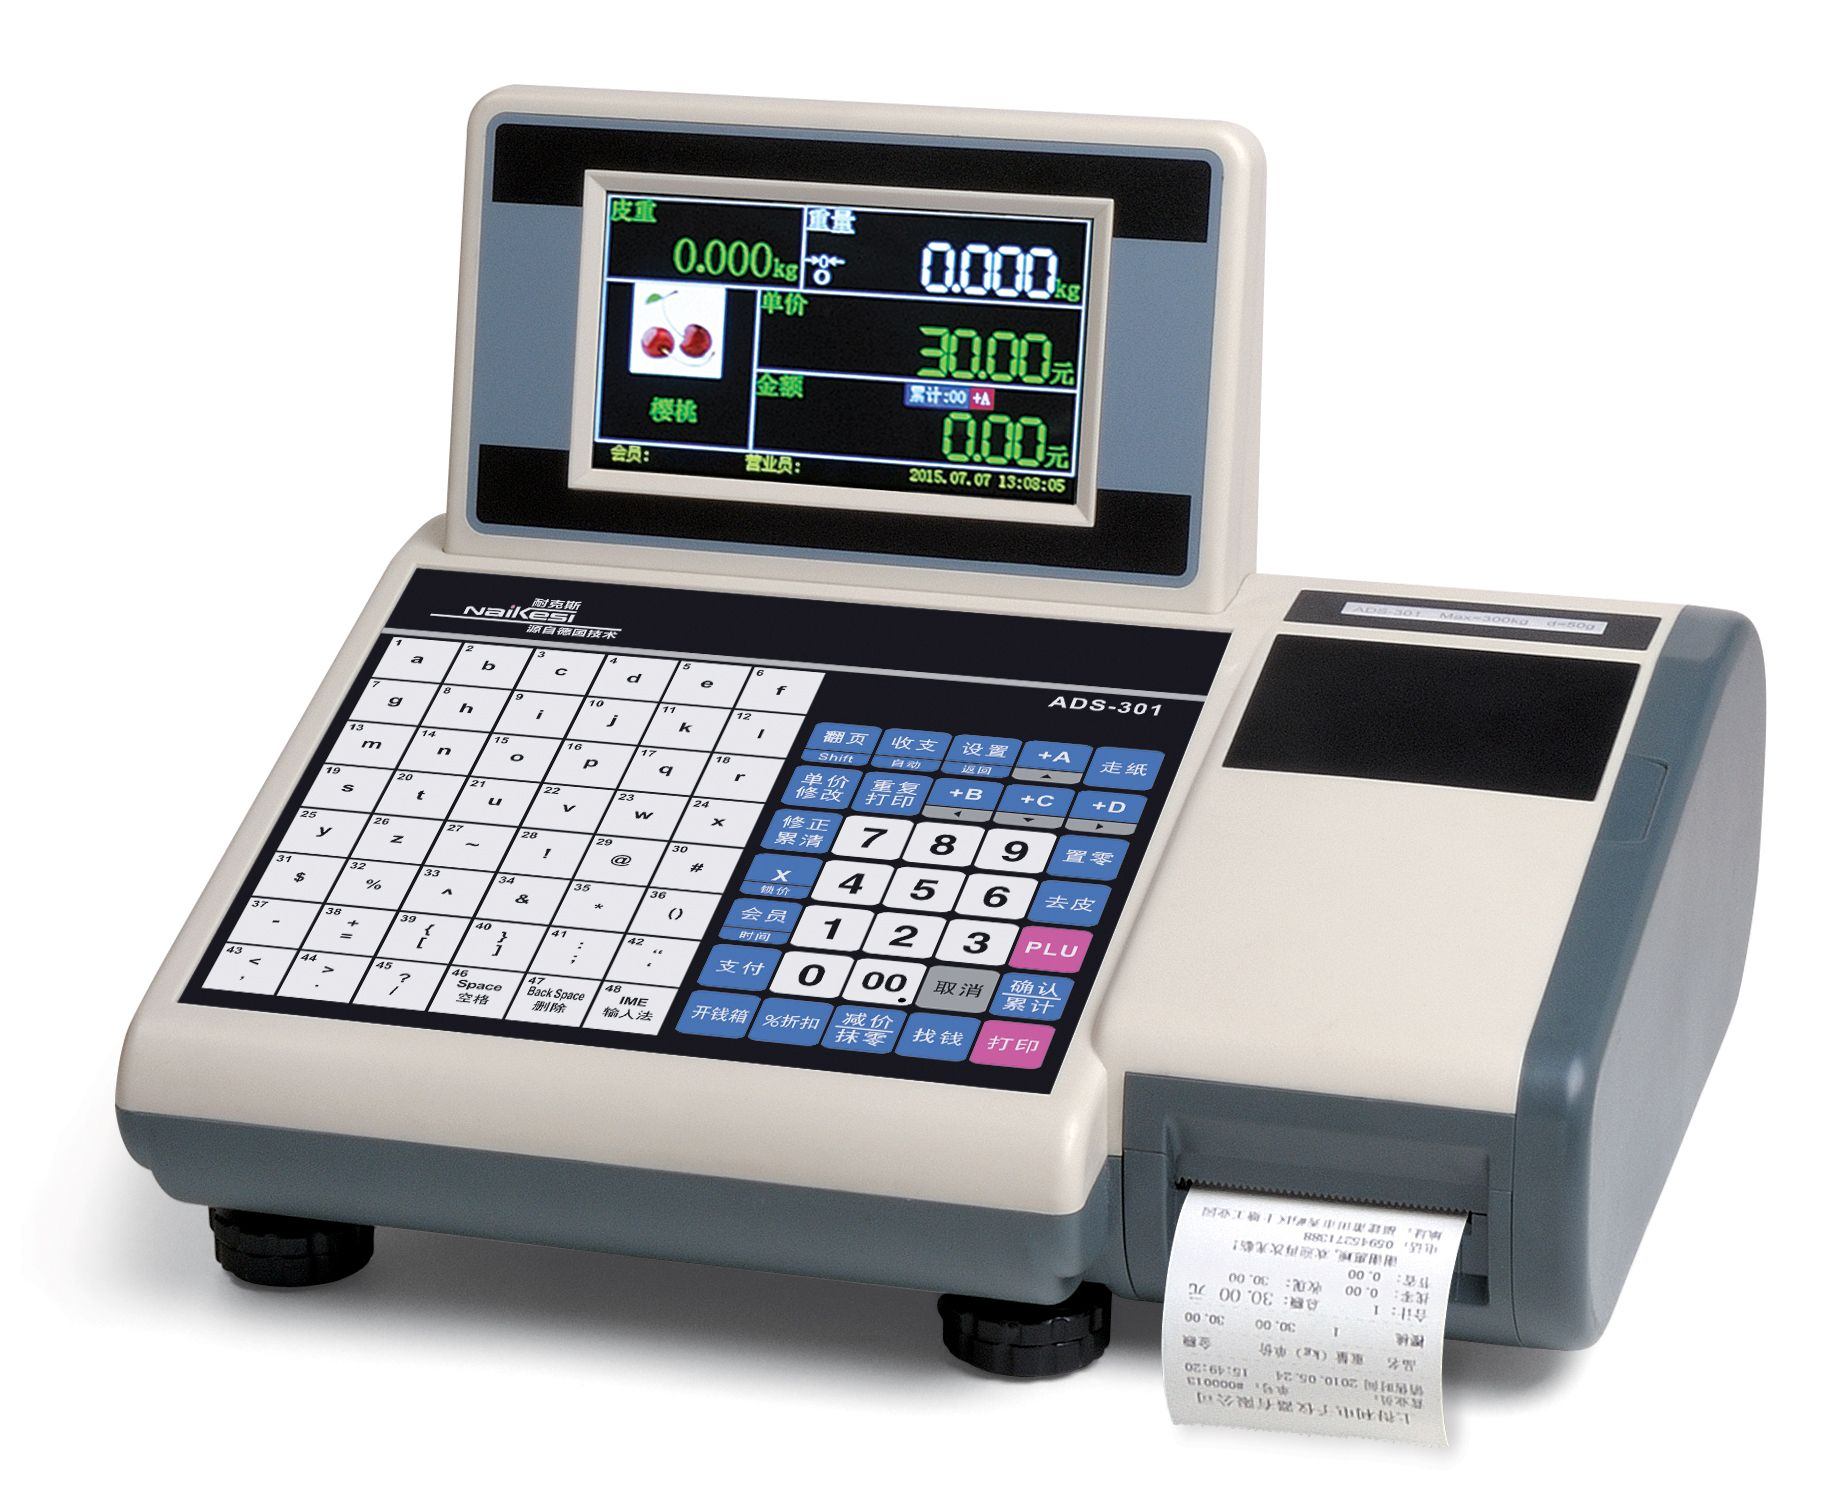 Electronic Instruments Books : Ads t series cash register scale product shangdeli